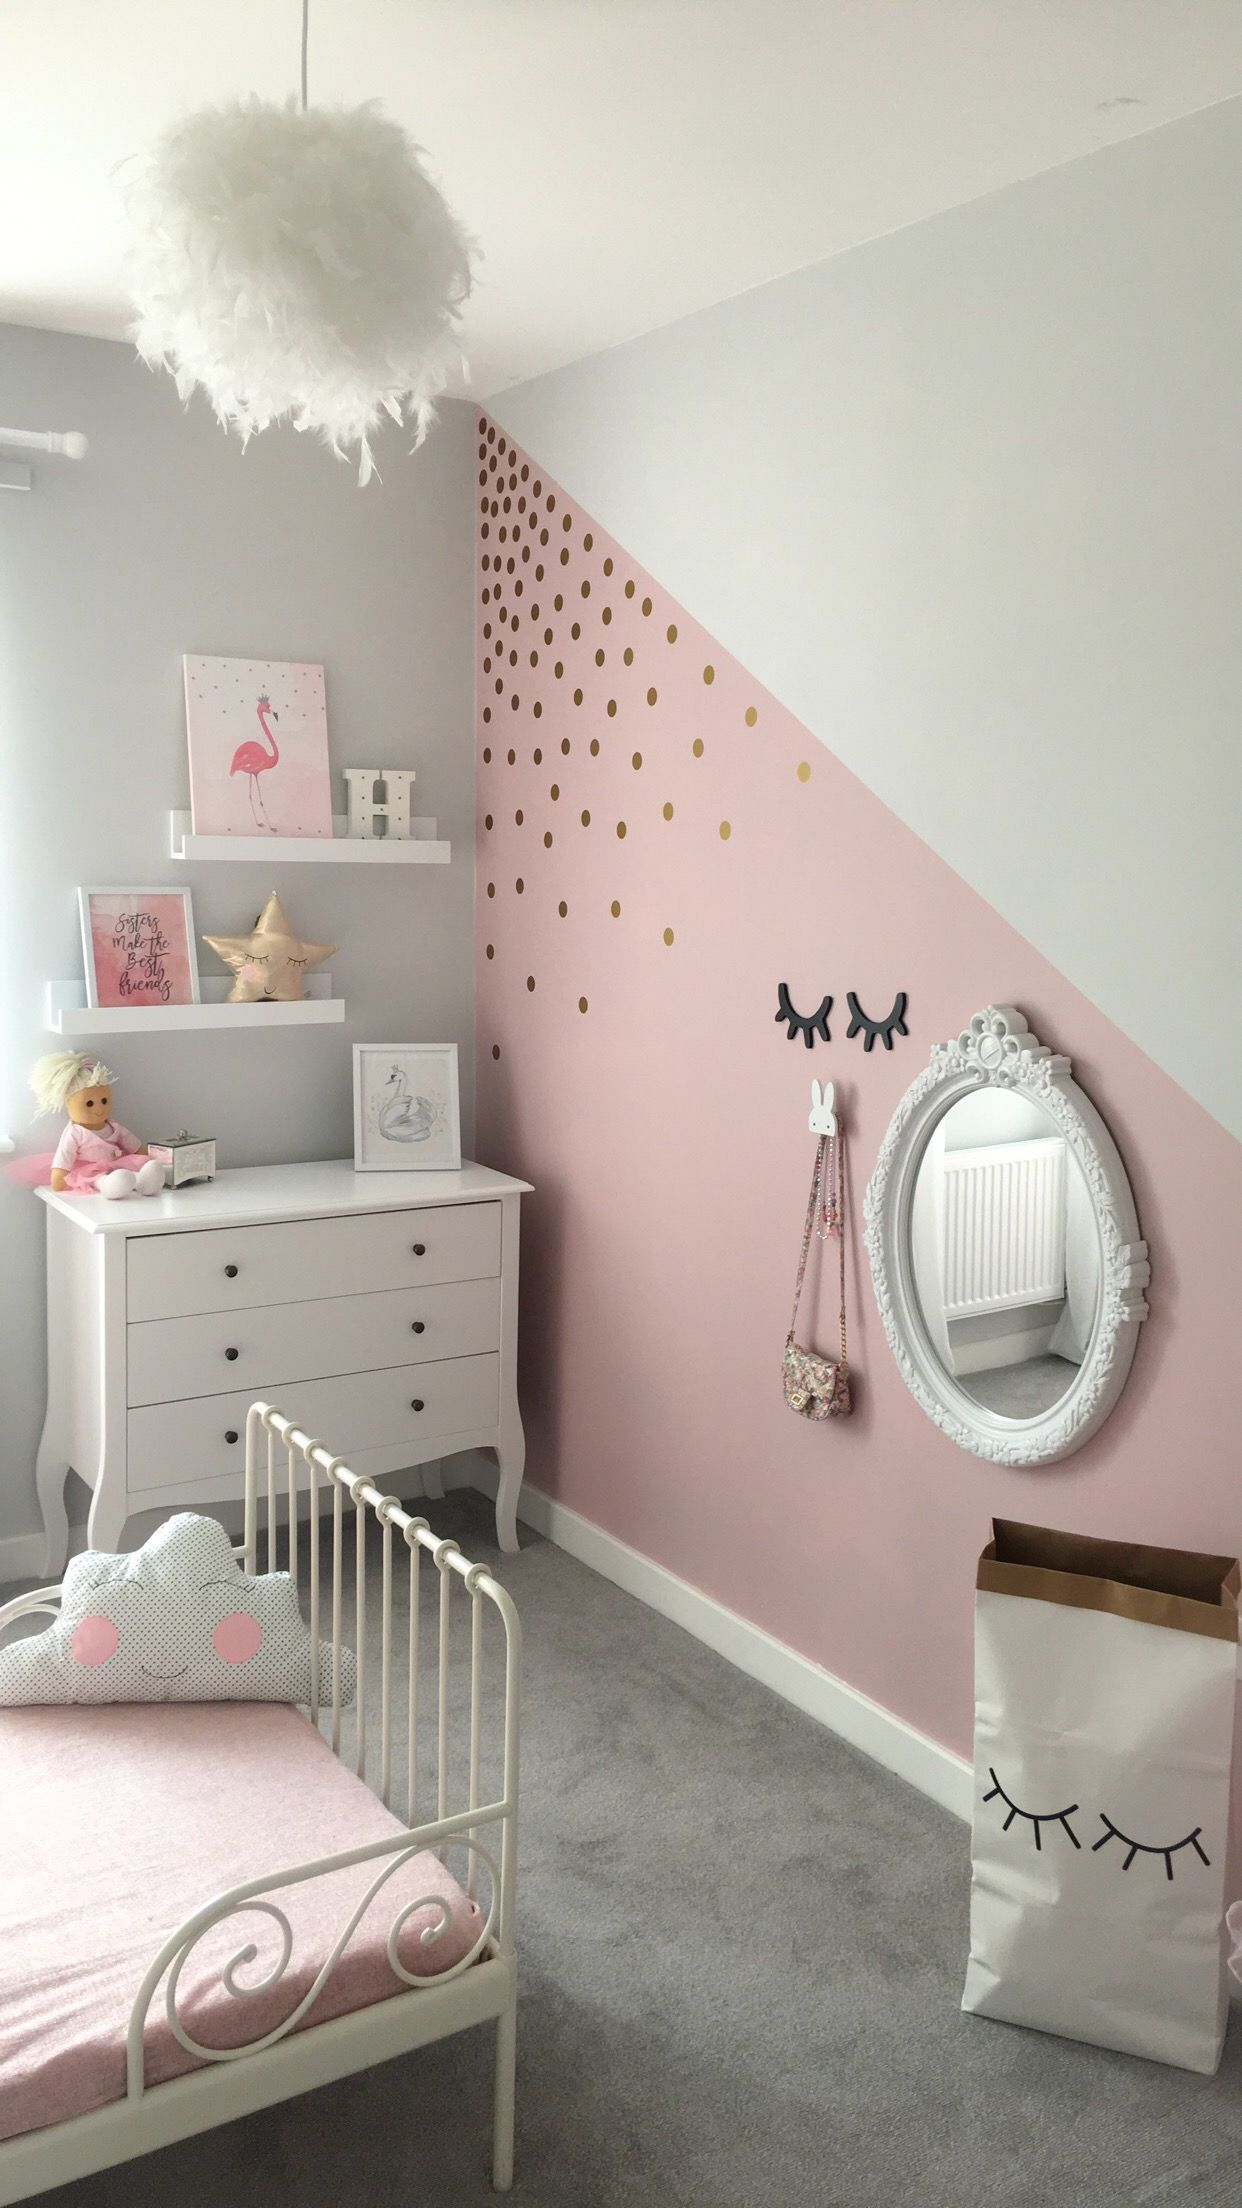 Pin On Doll House